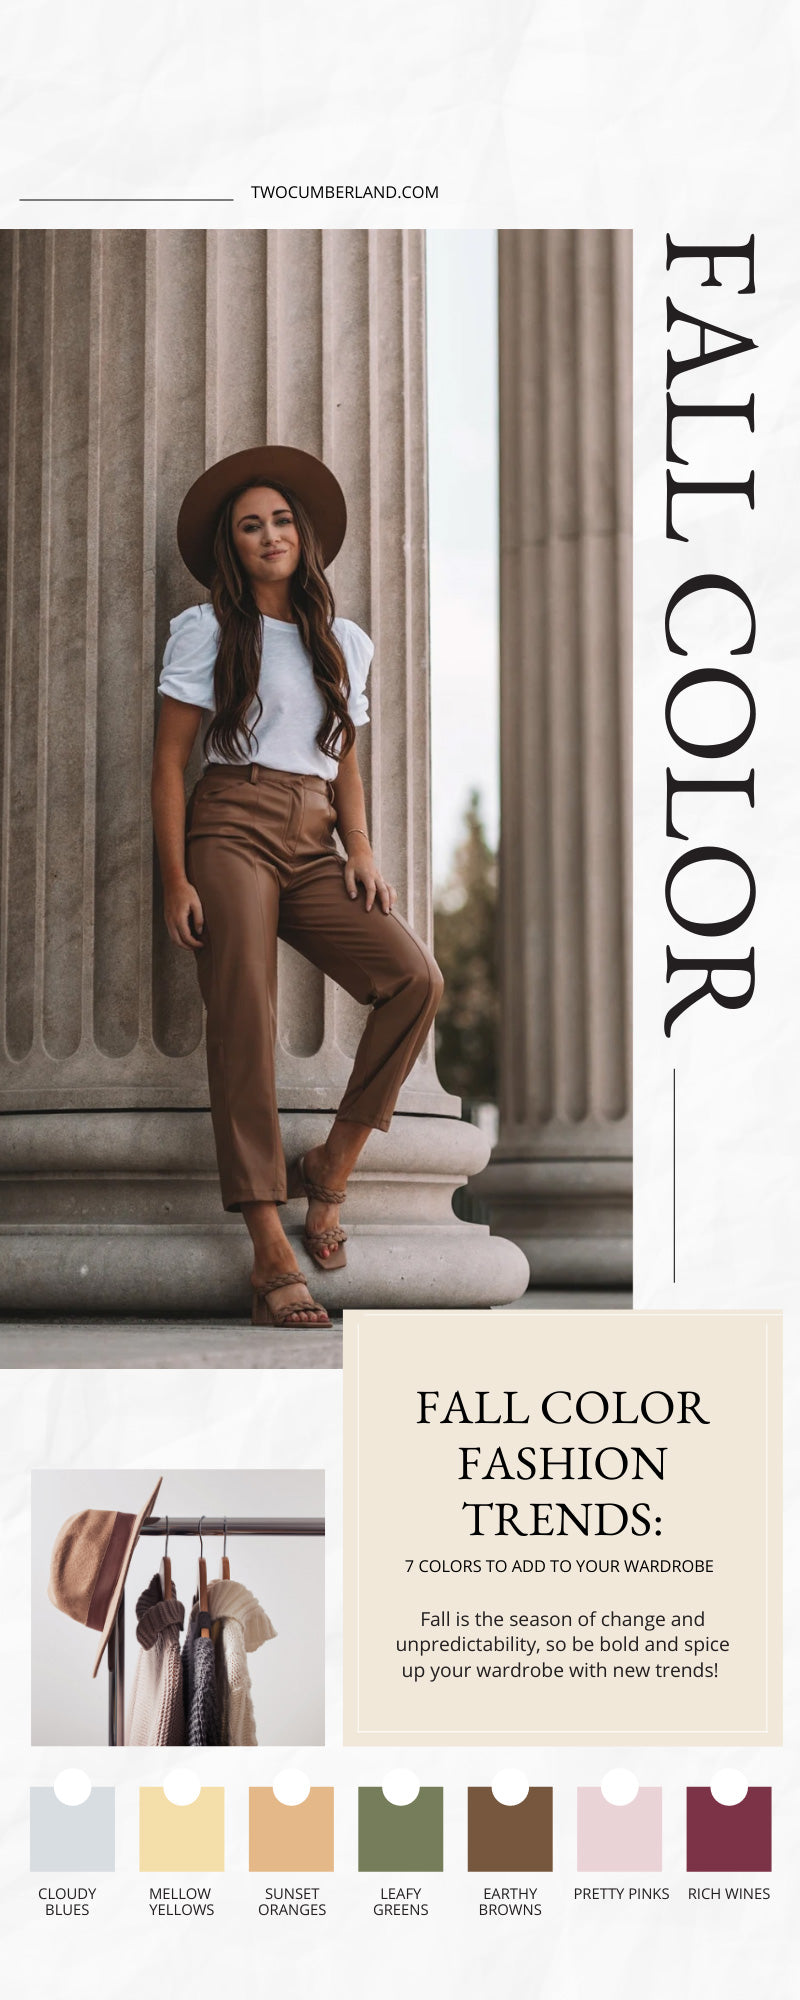 Fall Color Fashion Trends: 7 Colors To Add to Your Wardrobe